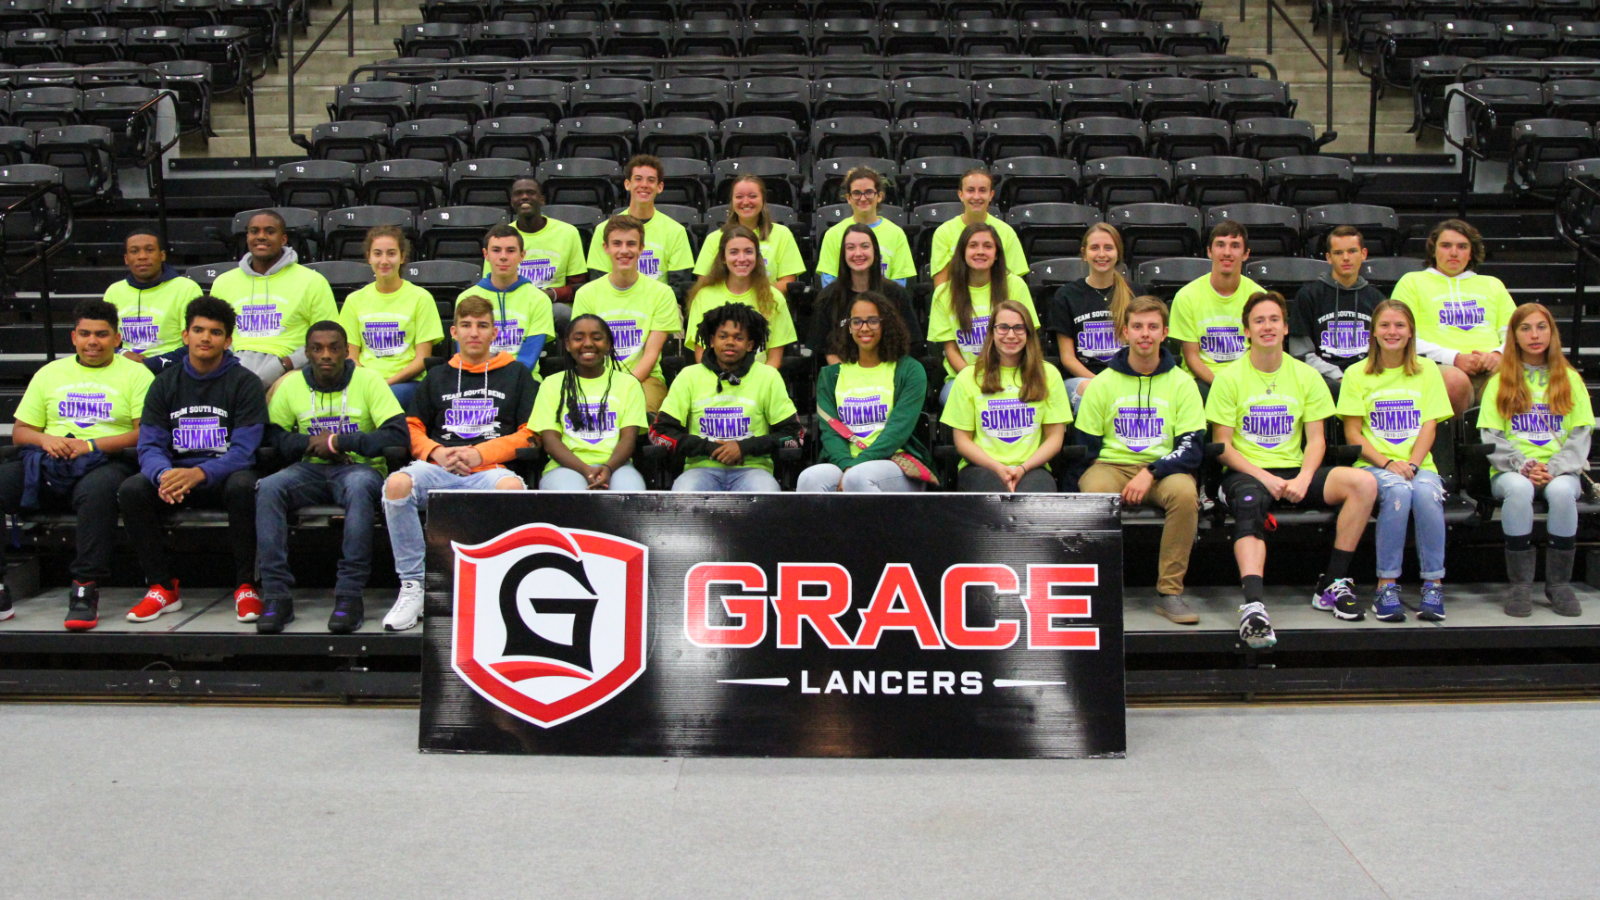 Grace welcomes South Bend schools for Sportsmanship Summit